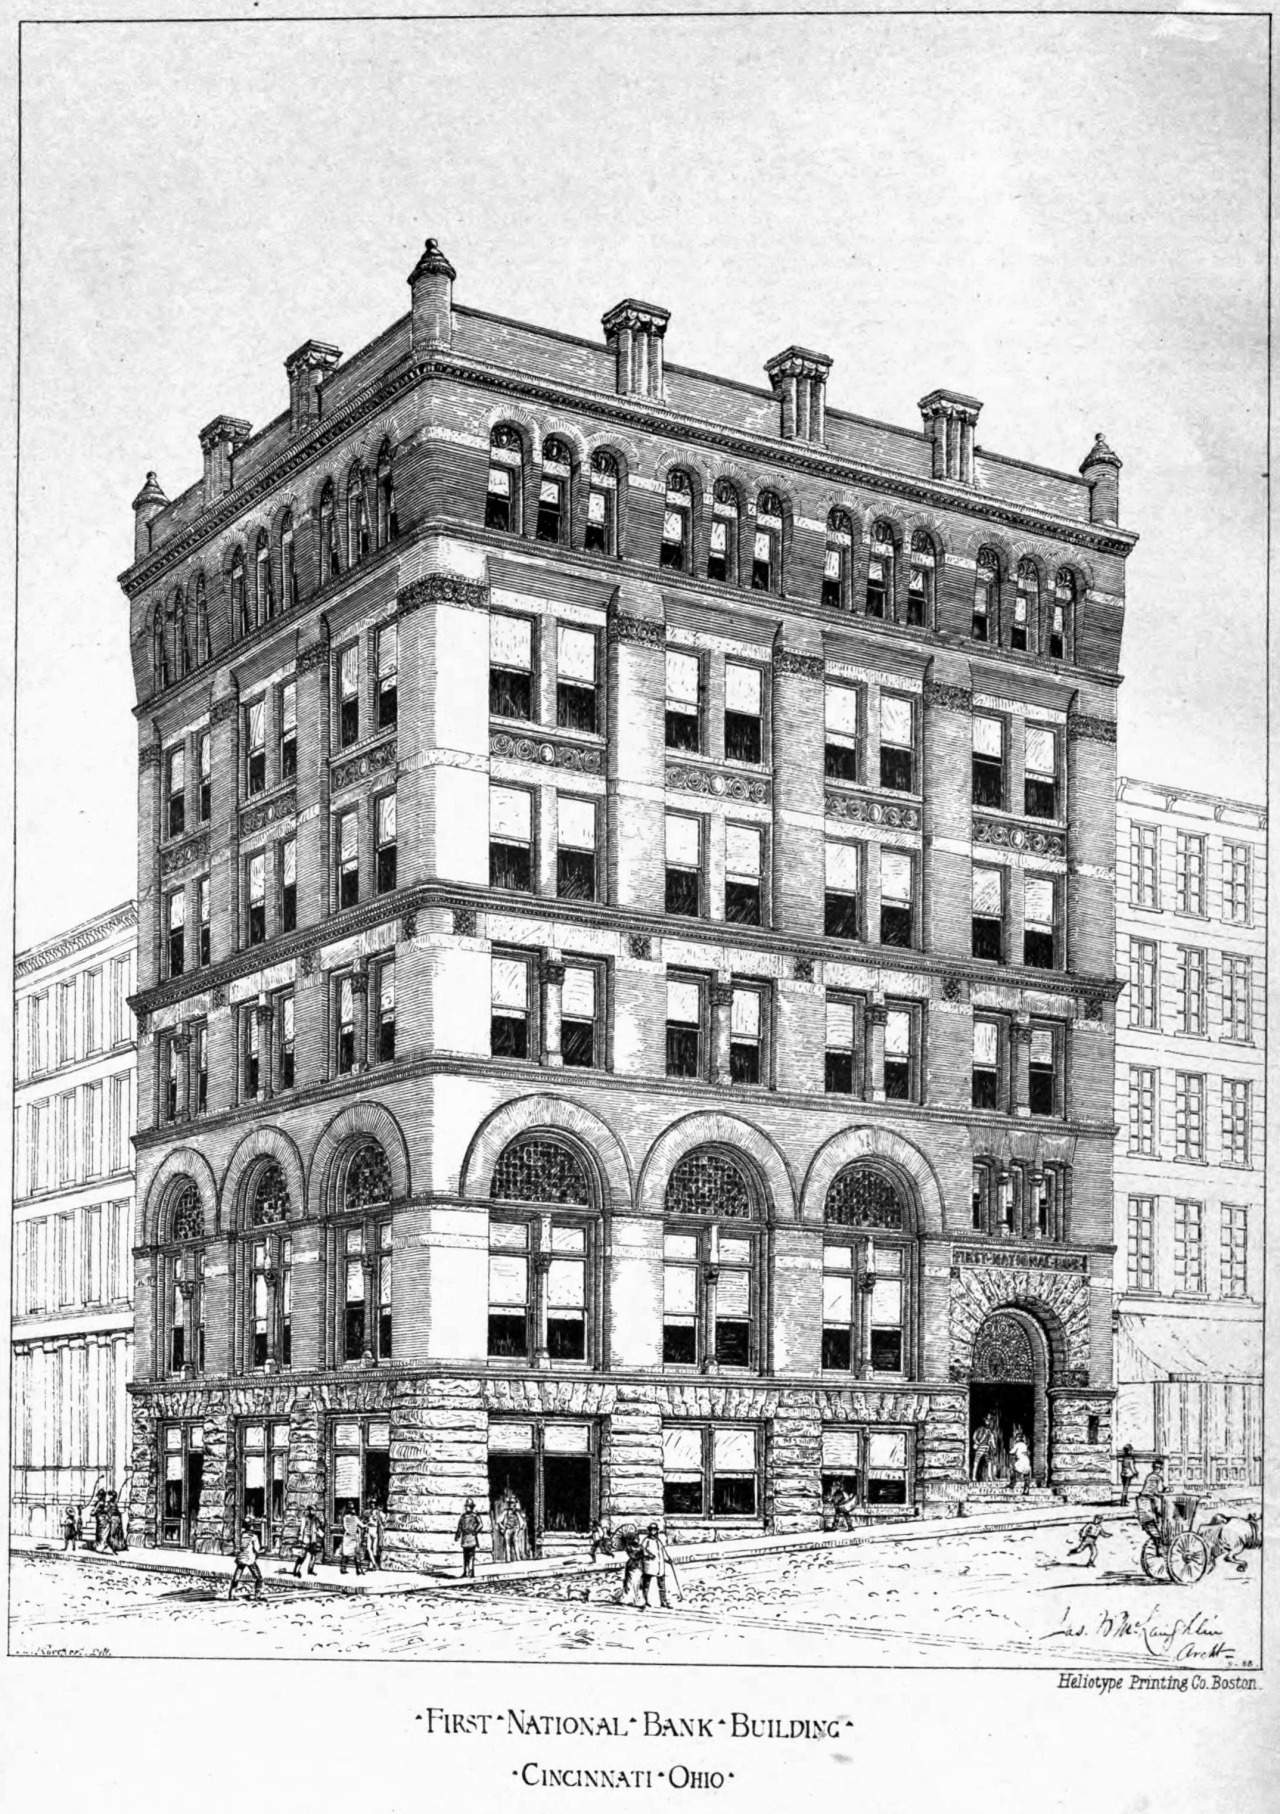 The First National Bank Building, Cincinnati